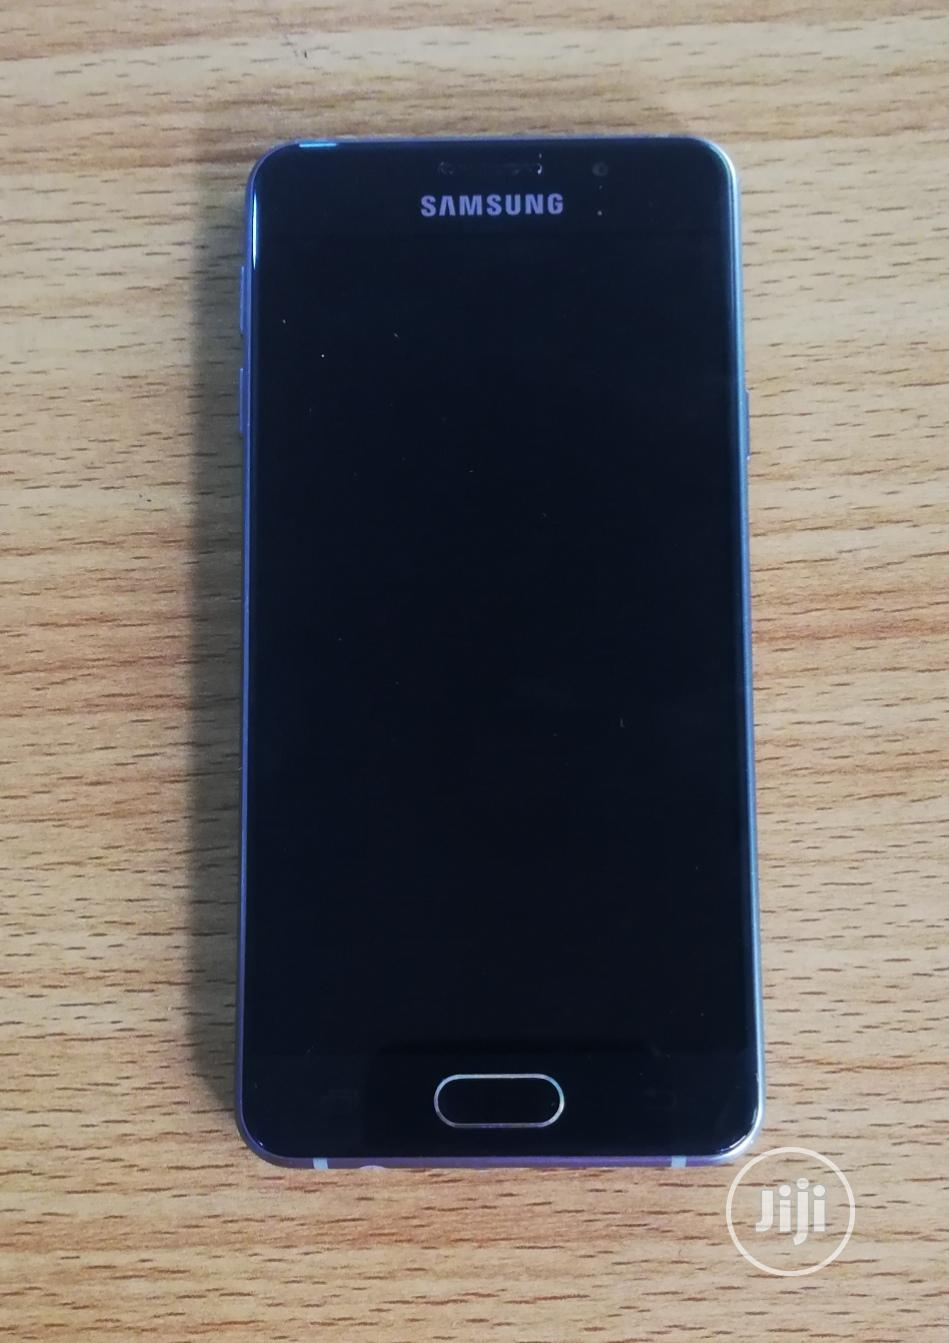 Samsung Galaxy A3 16 GB Black   Mobile Phones for sale in Mushin, Lagos State, Nigeria